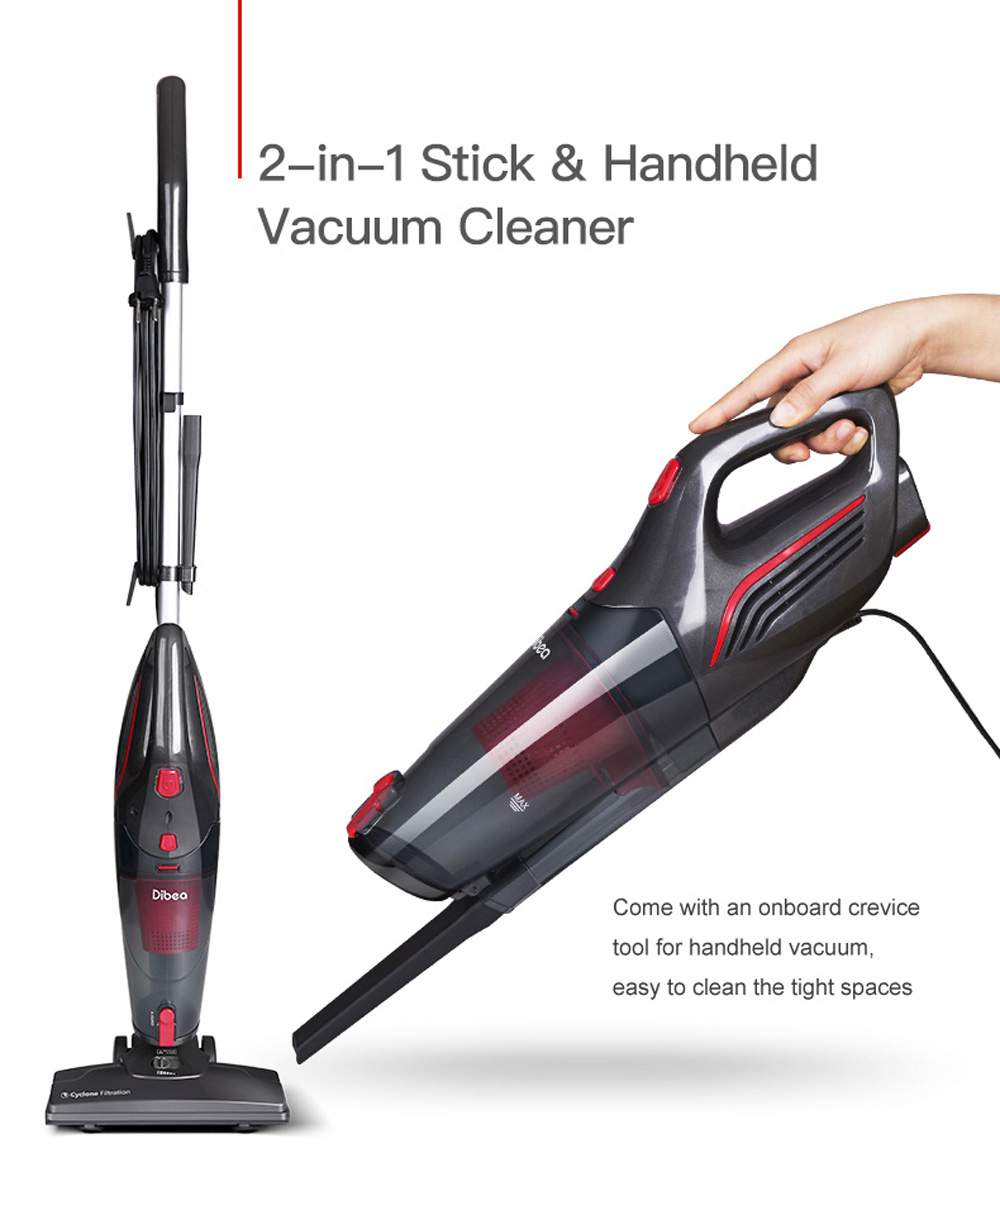 Carpet Cleaning Vacuum Details About Dibea 2 In 1 Cord Handheld Stick Vacuum Cleaner Dust Floor Carpet Cleaning 15kpa